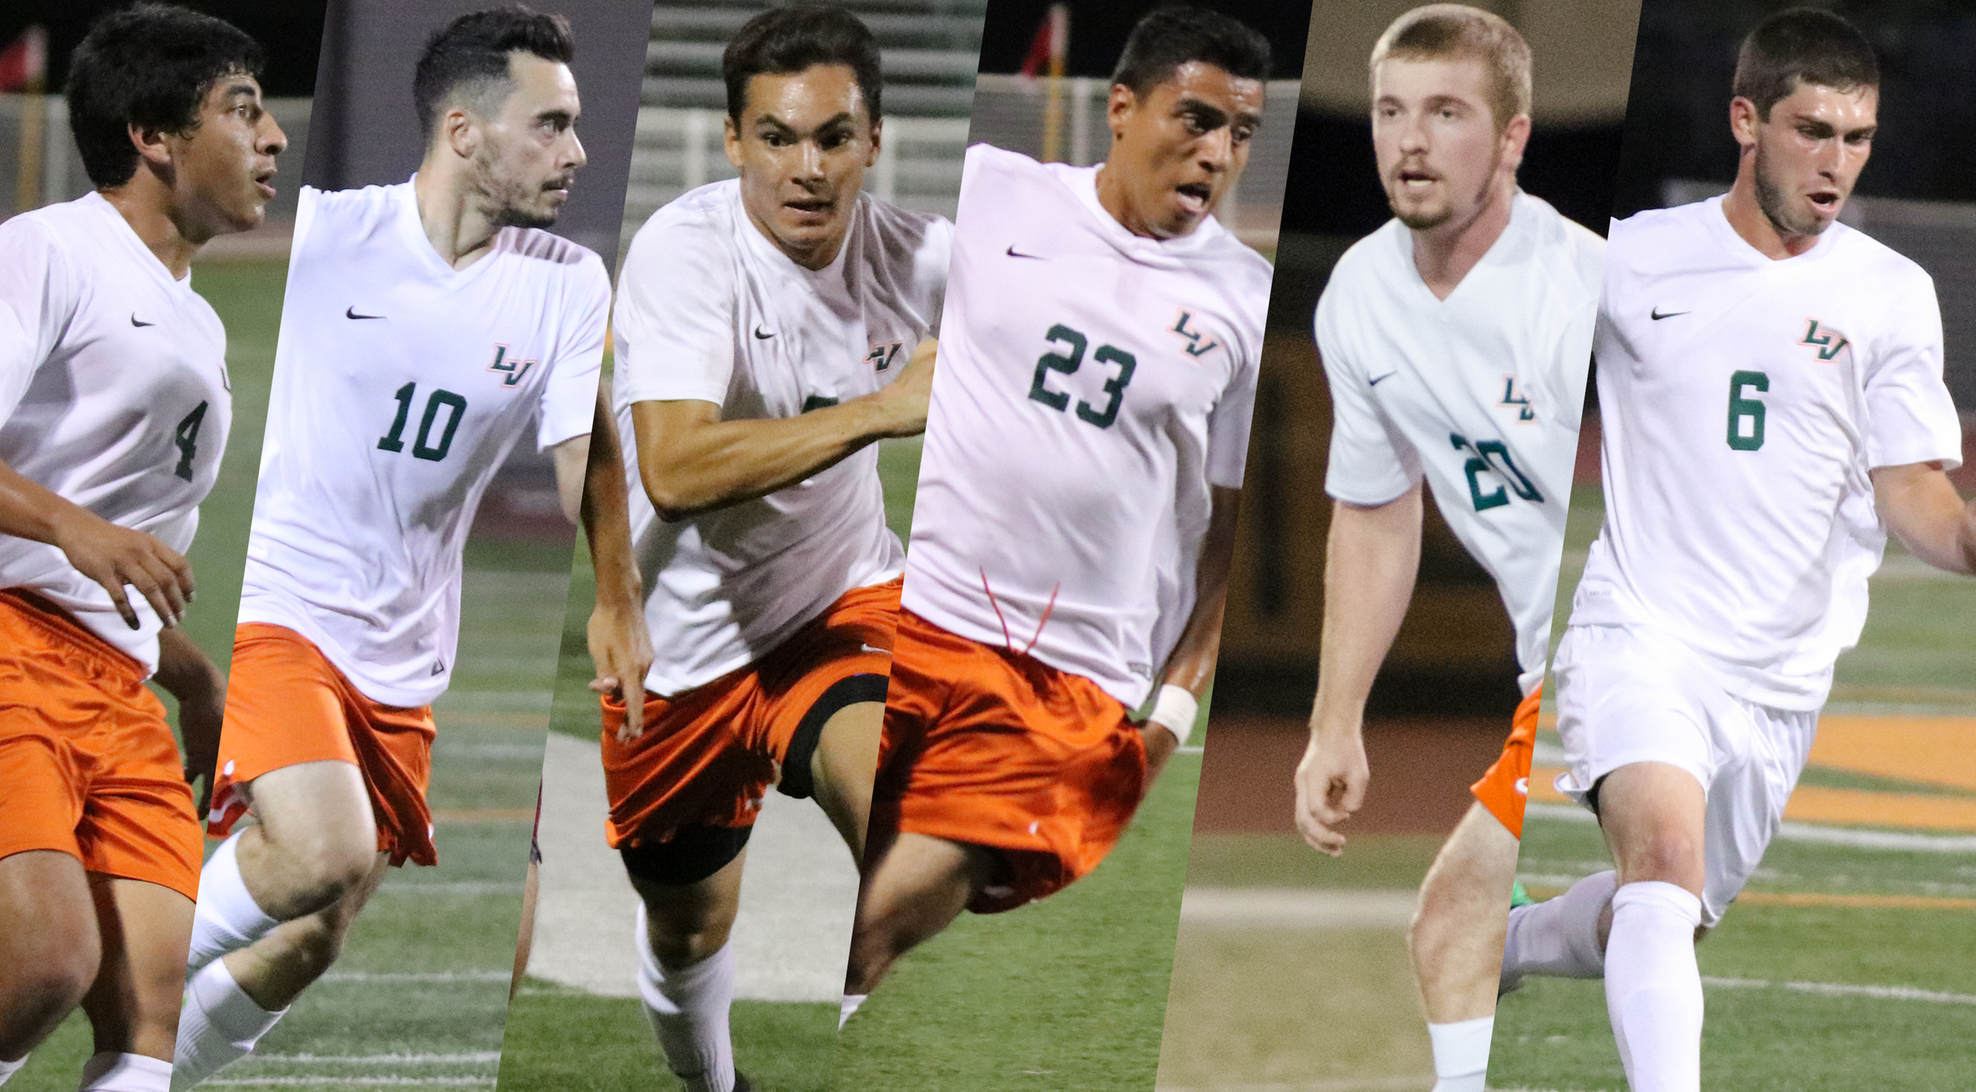 Uribe named SCIAC Athlete of the Year, La Verne lands six on All-SCIAC